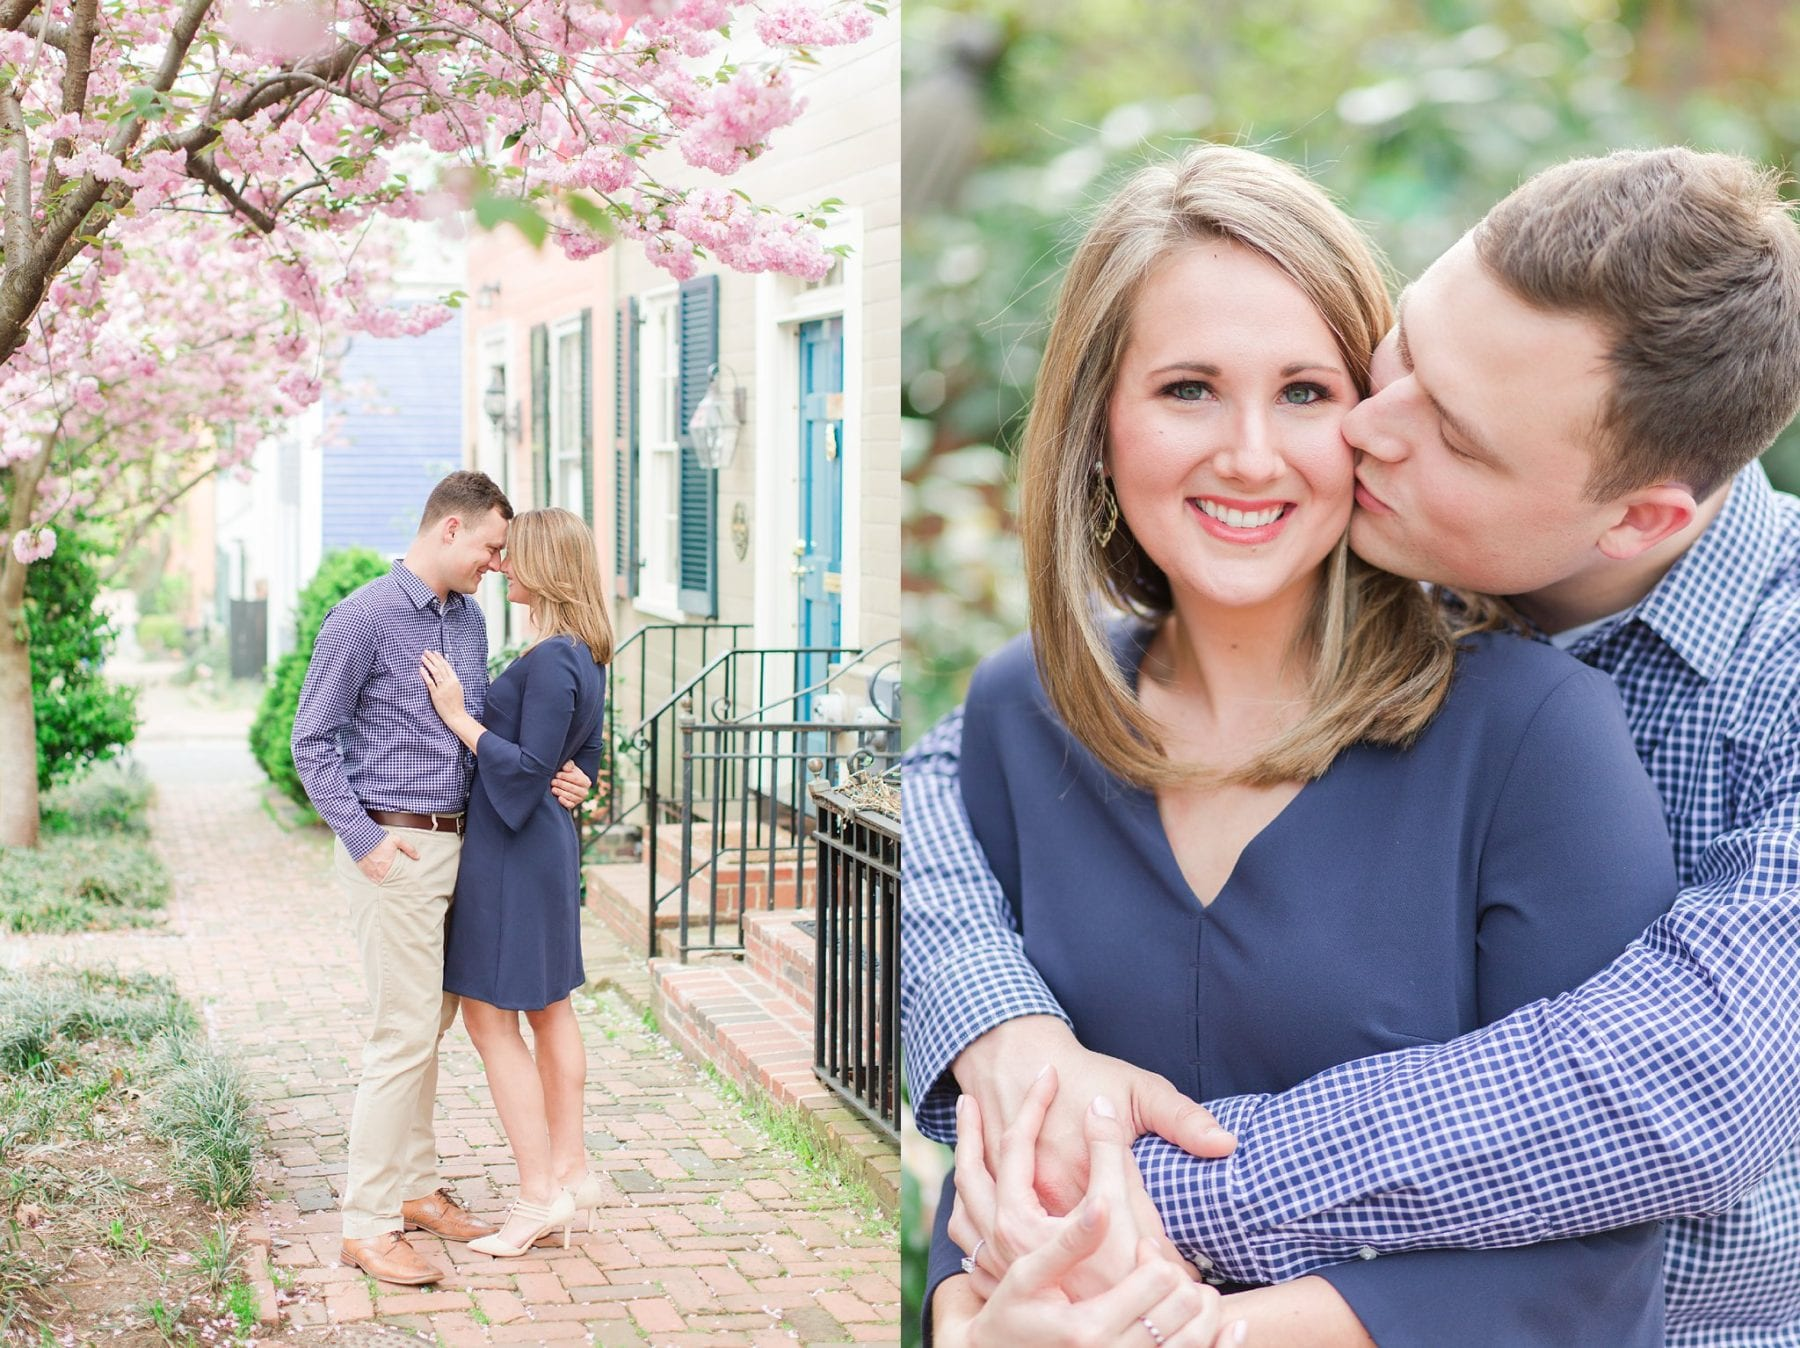 Springtime Old Town Alexandria Engagement Session Matt & Maxie Megan Kelsey Photography-11.jpg